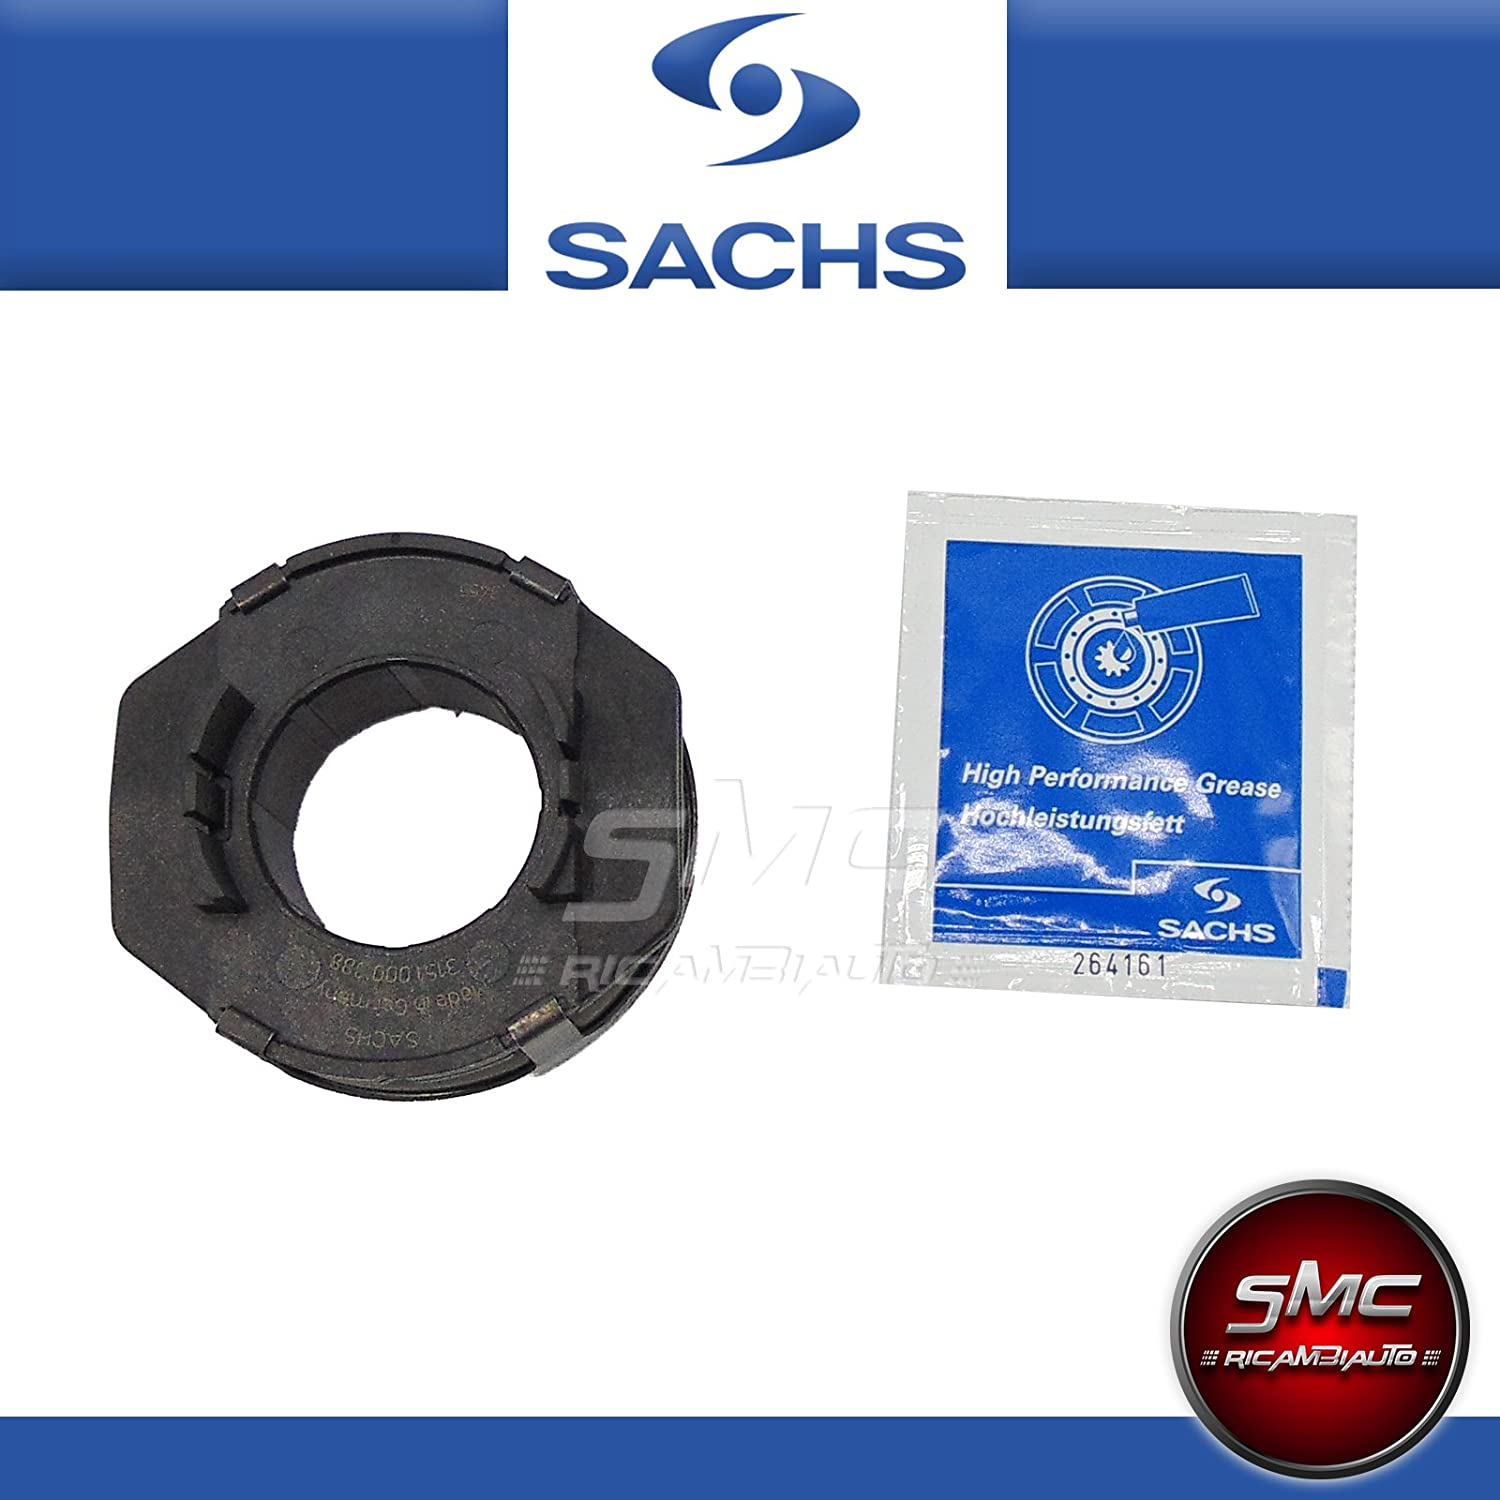 229 060 1059 Kit Embrague y volante bimassa Original SACHS 2290601059: Amazon.es: Coche y moto